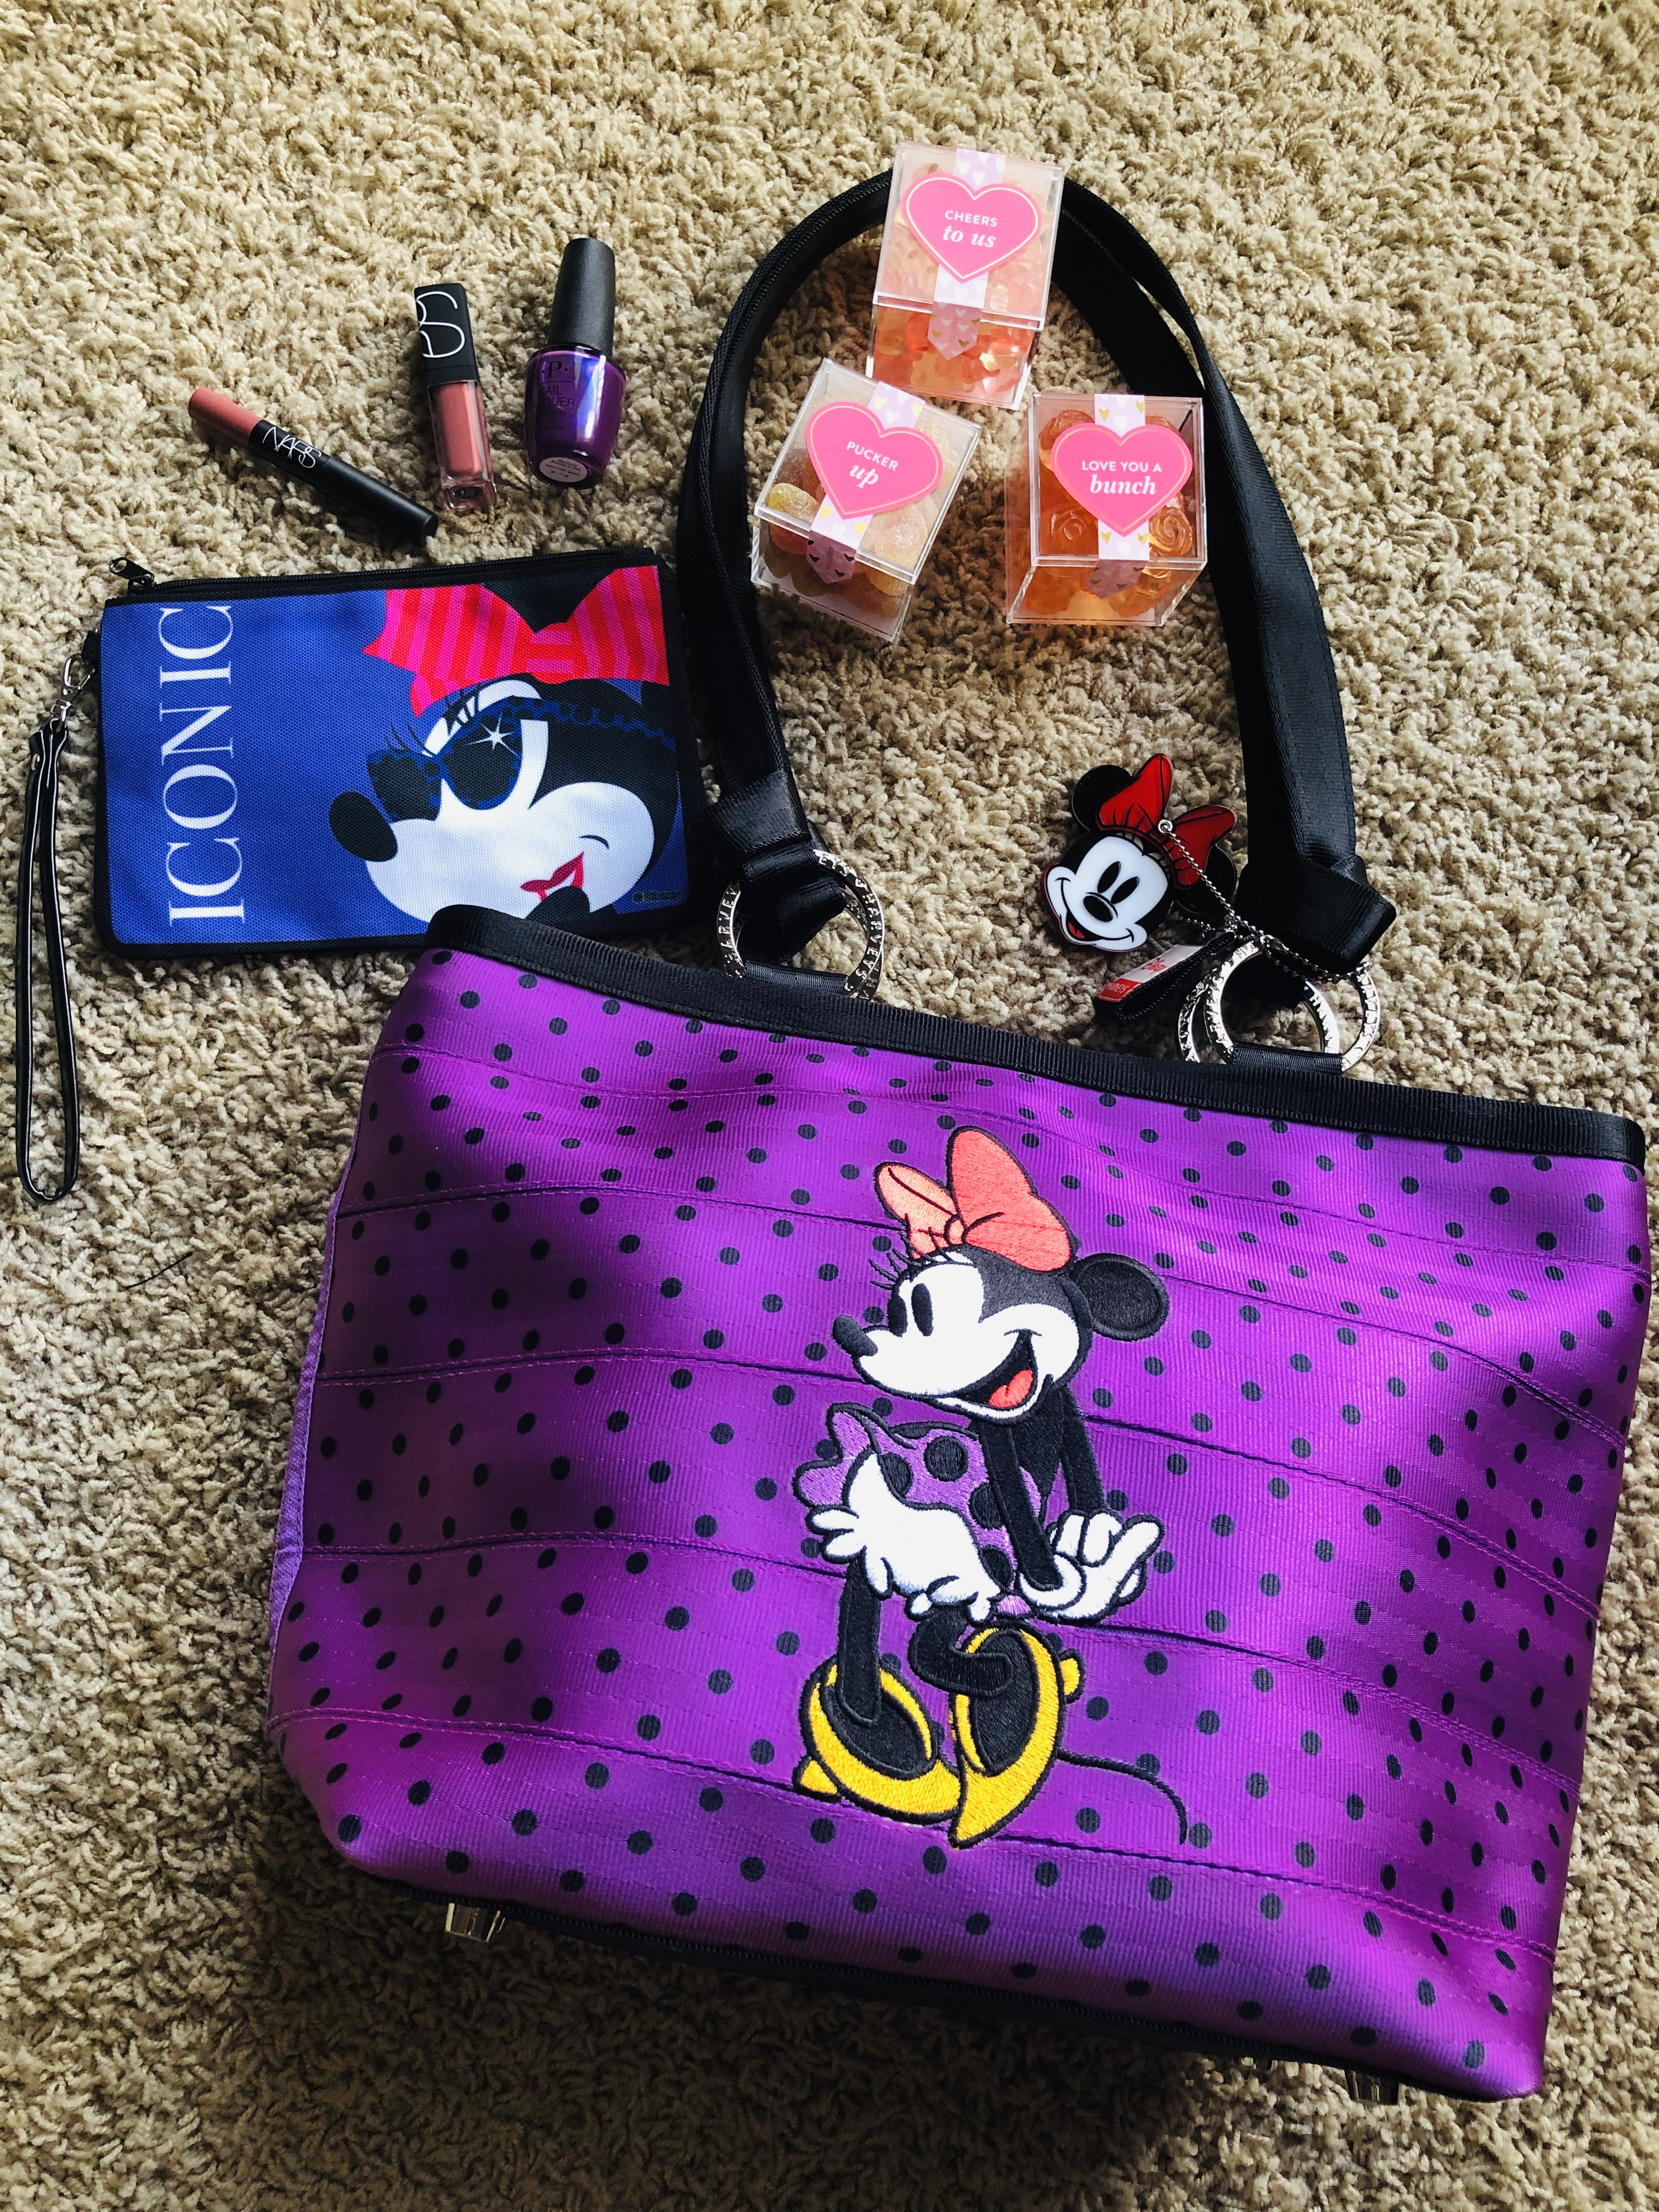 What's In My Bag: Ring Tote Disney Minnie Polka Dot